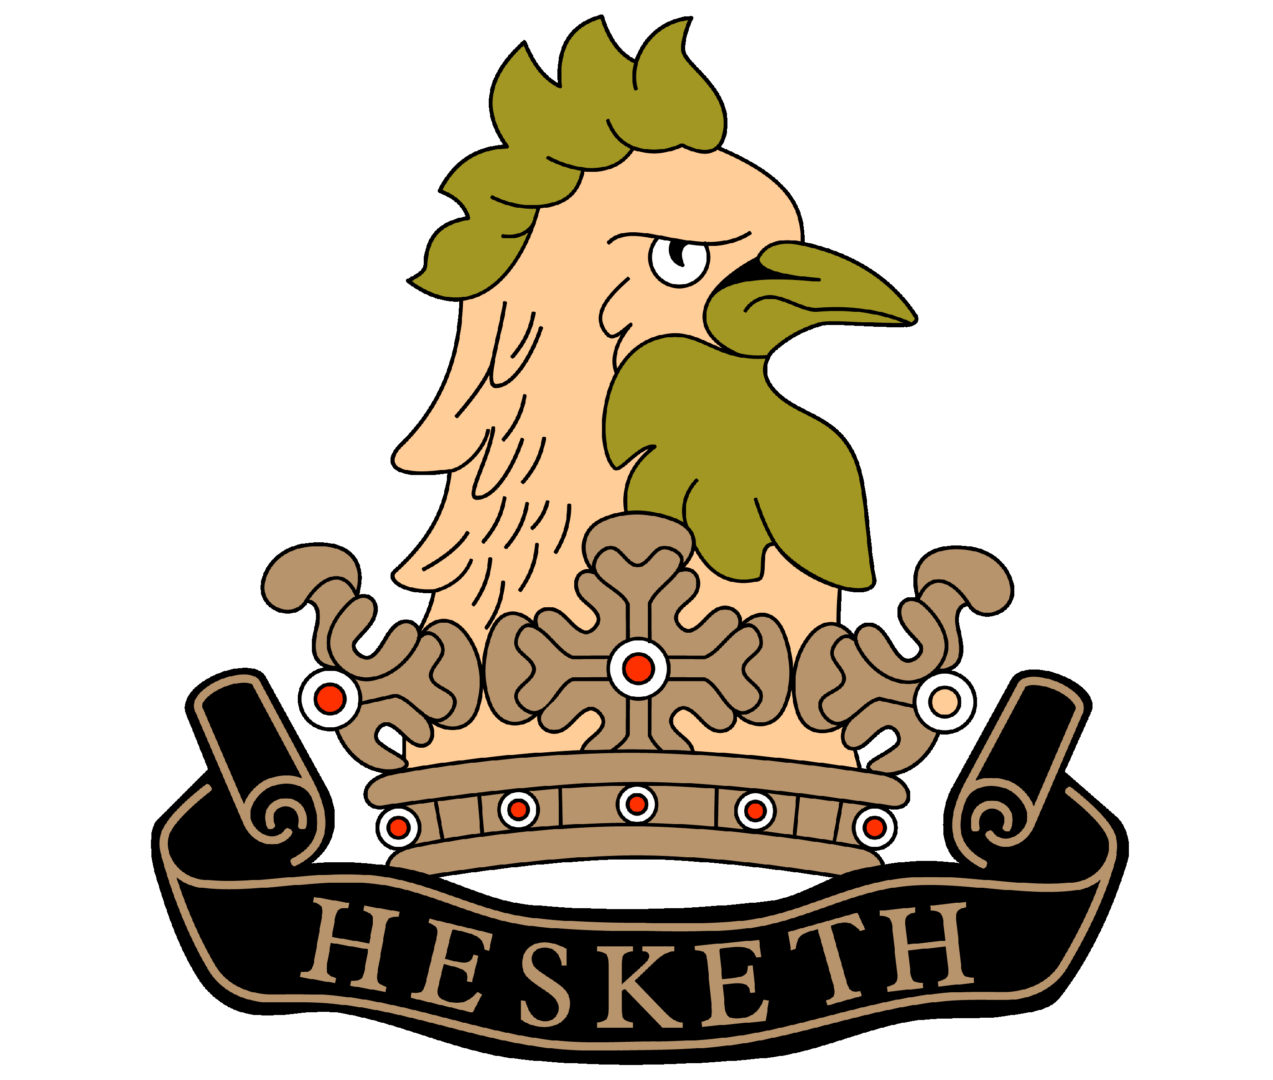 Hesketh Motorcycle Logo